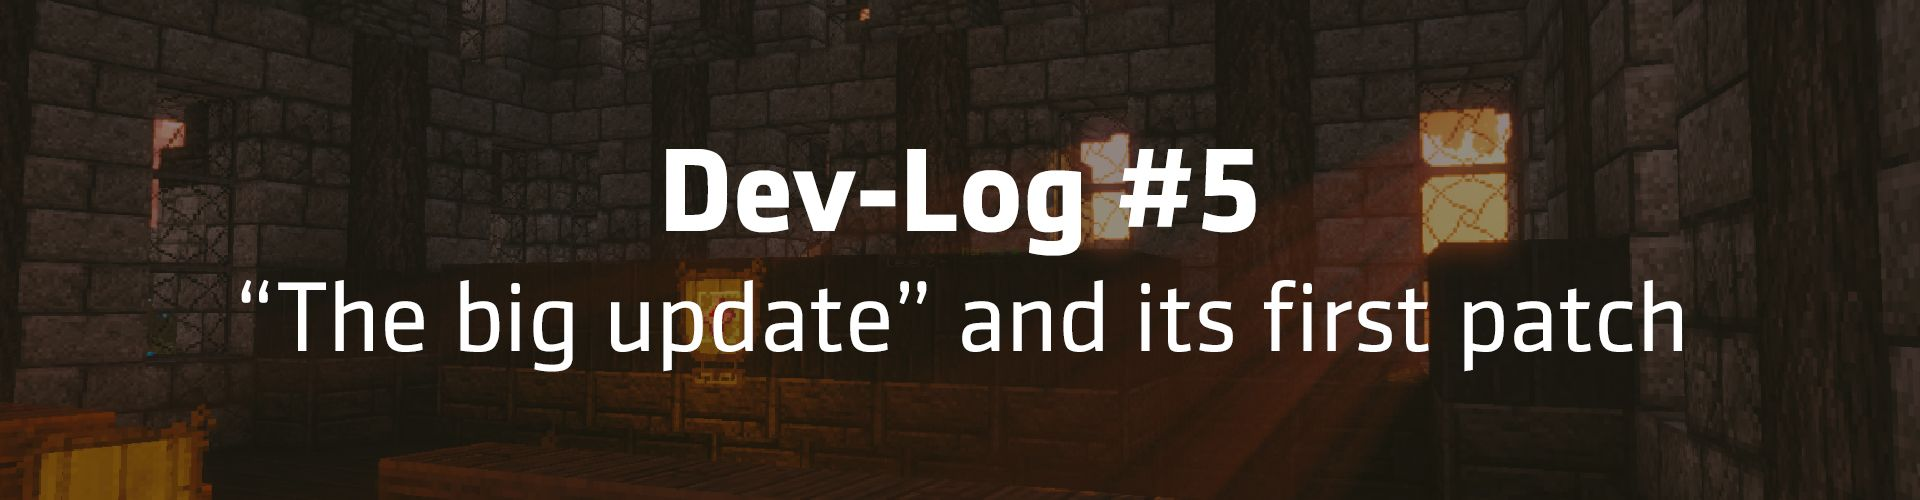 "Dev-Log #5 - ""The big update"" and its first patch"